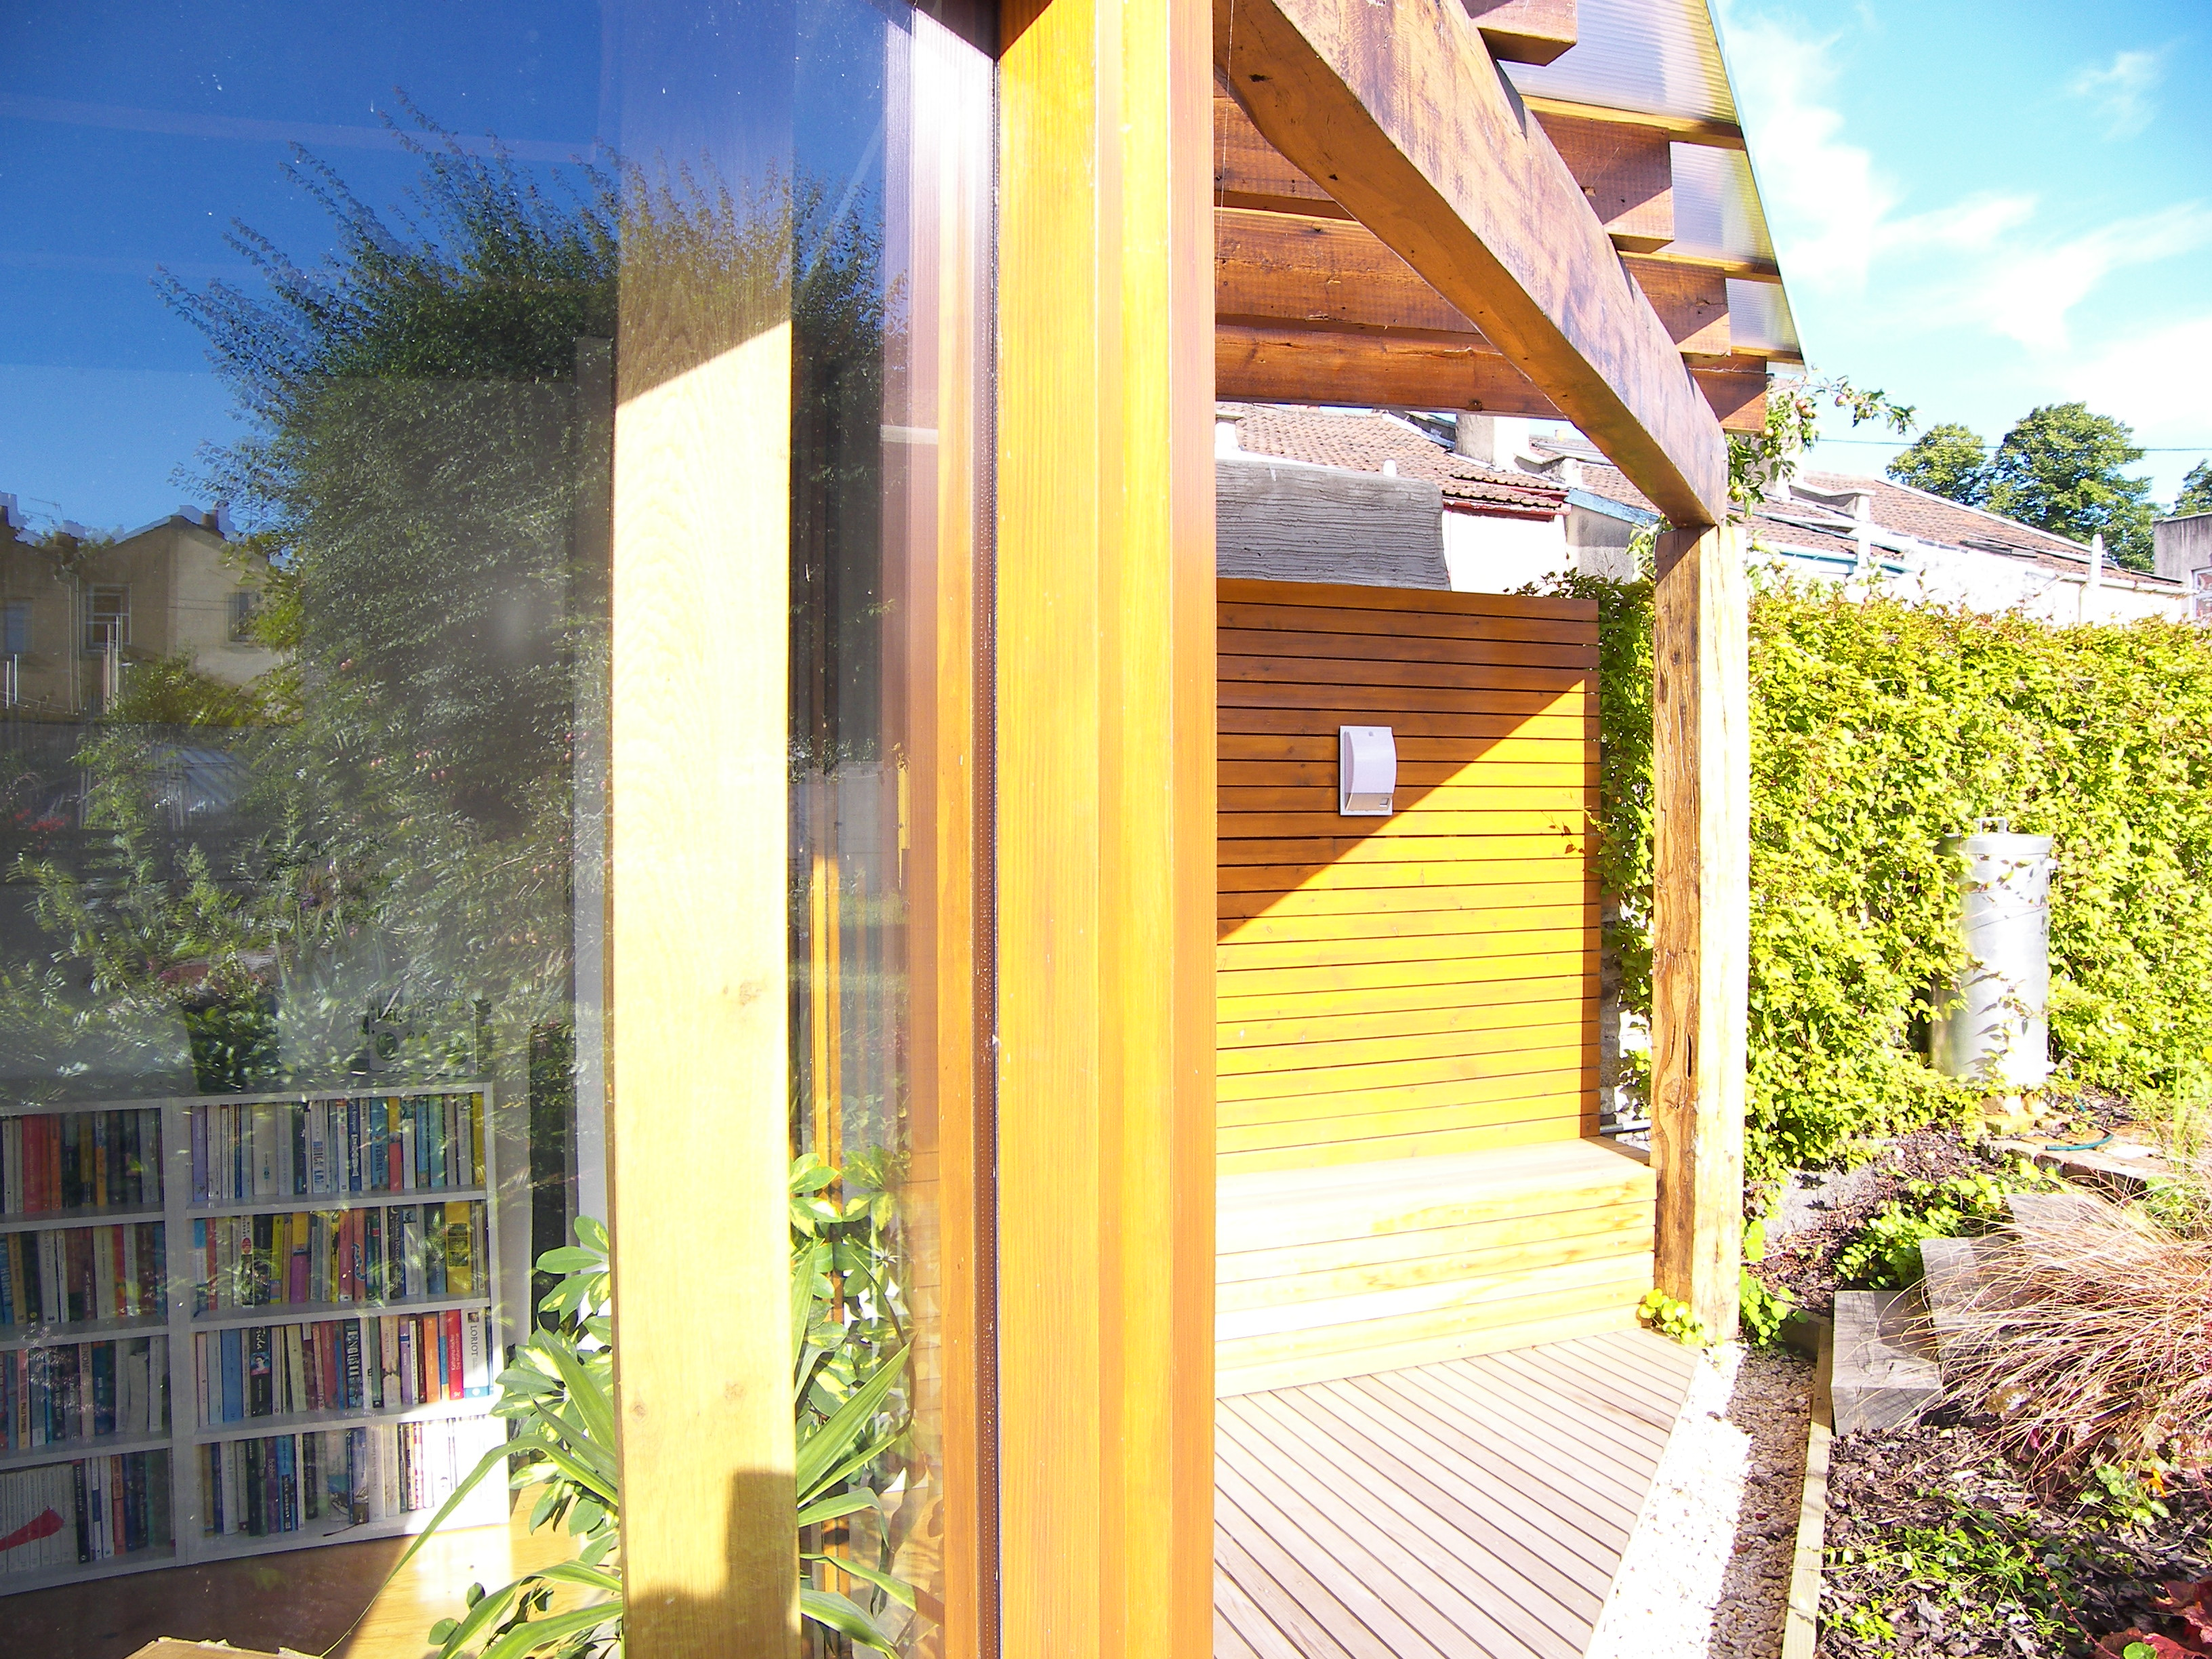 14_Extension House in Southville, Bristol by DHVA